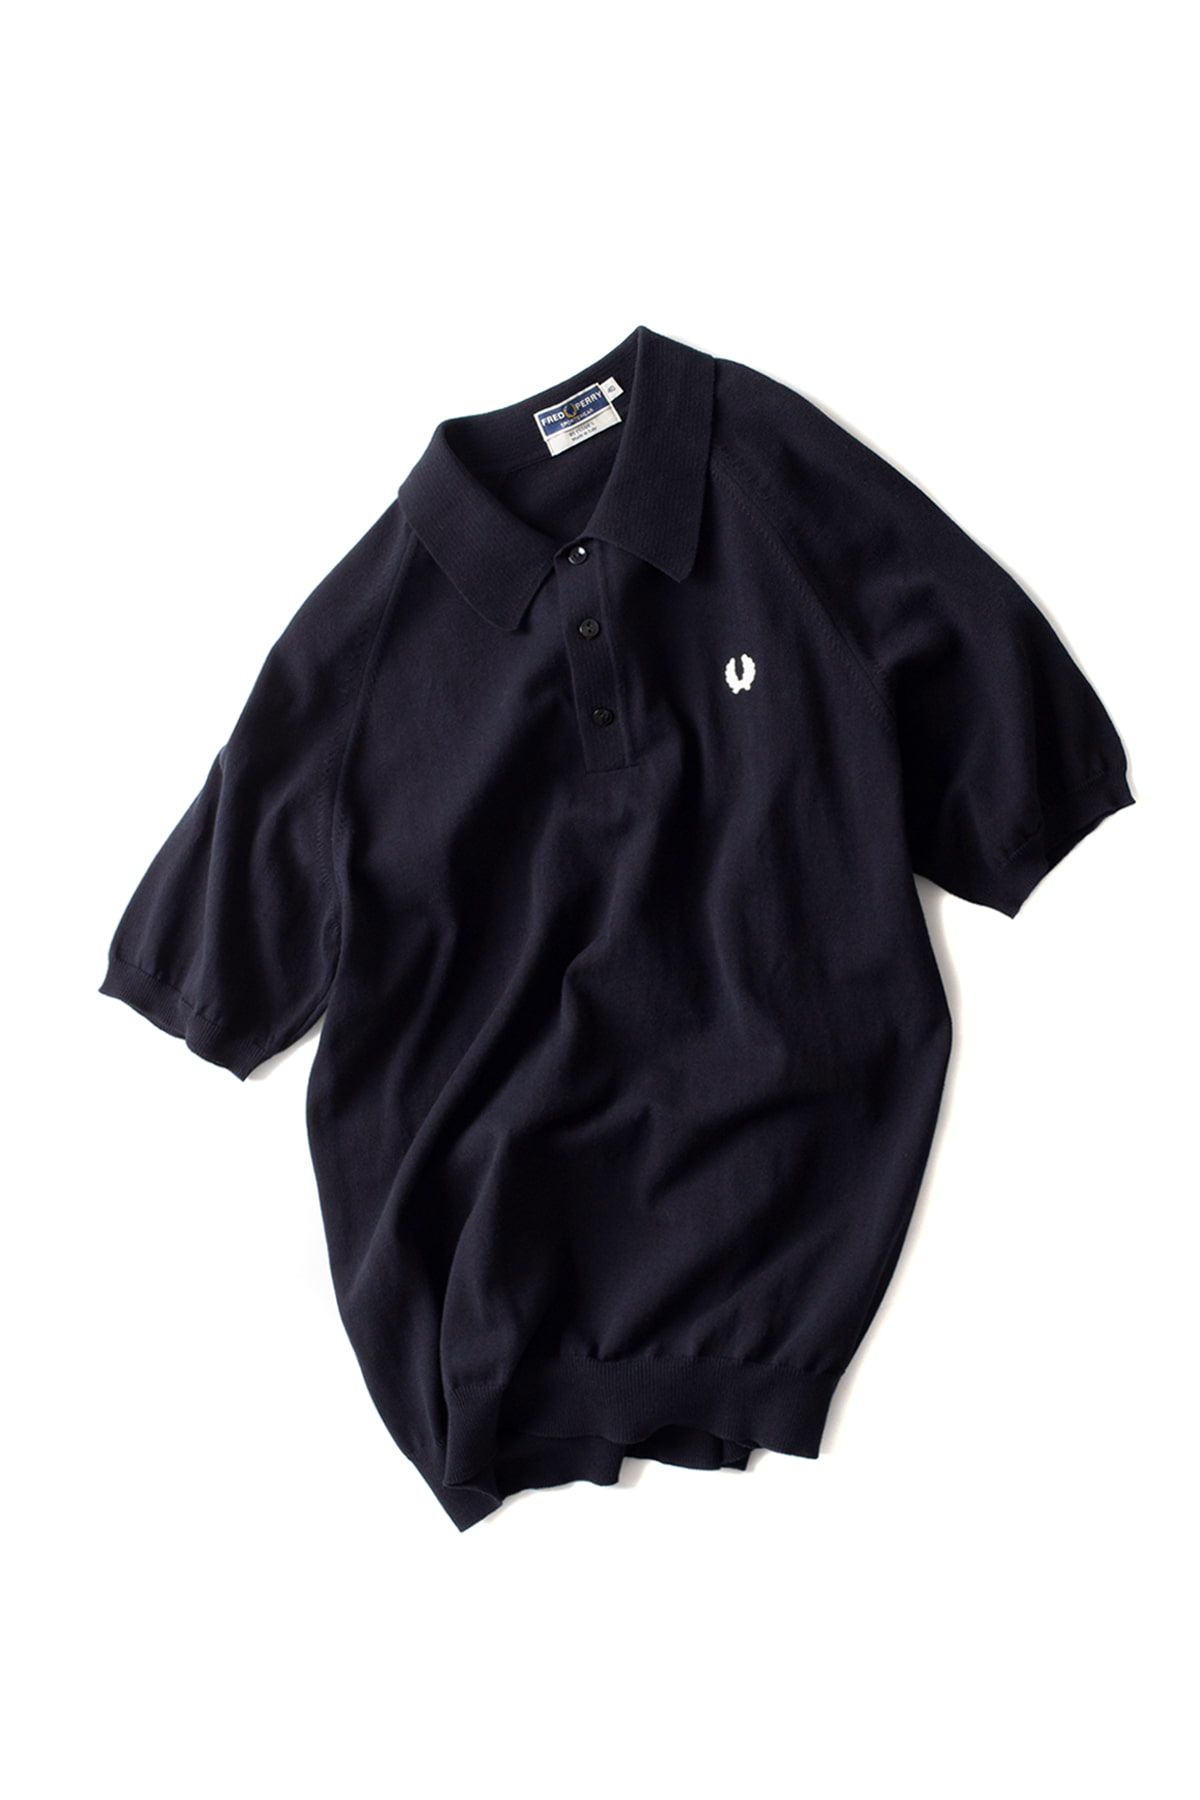 FRED PERRY : S/S Raglan Sleeve Knit Shirt (Navy)